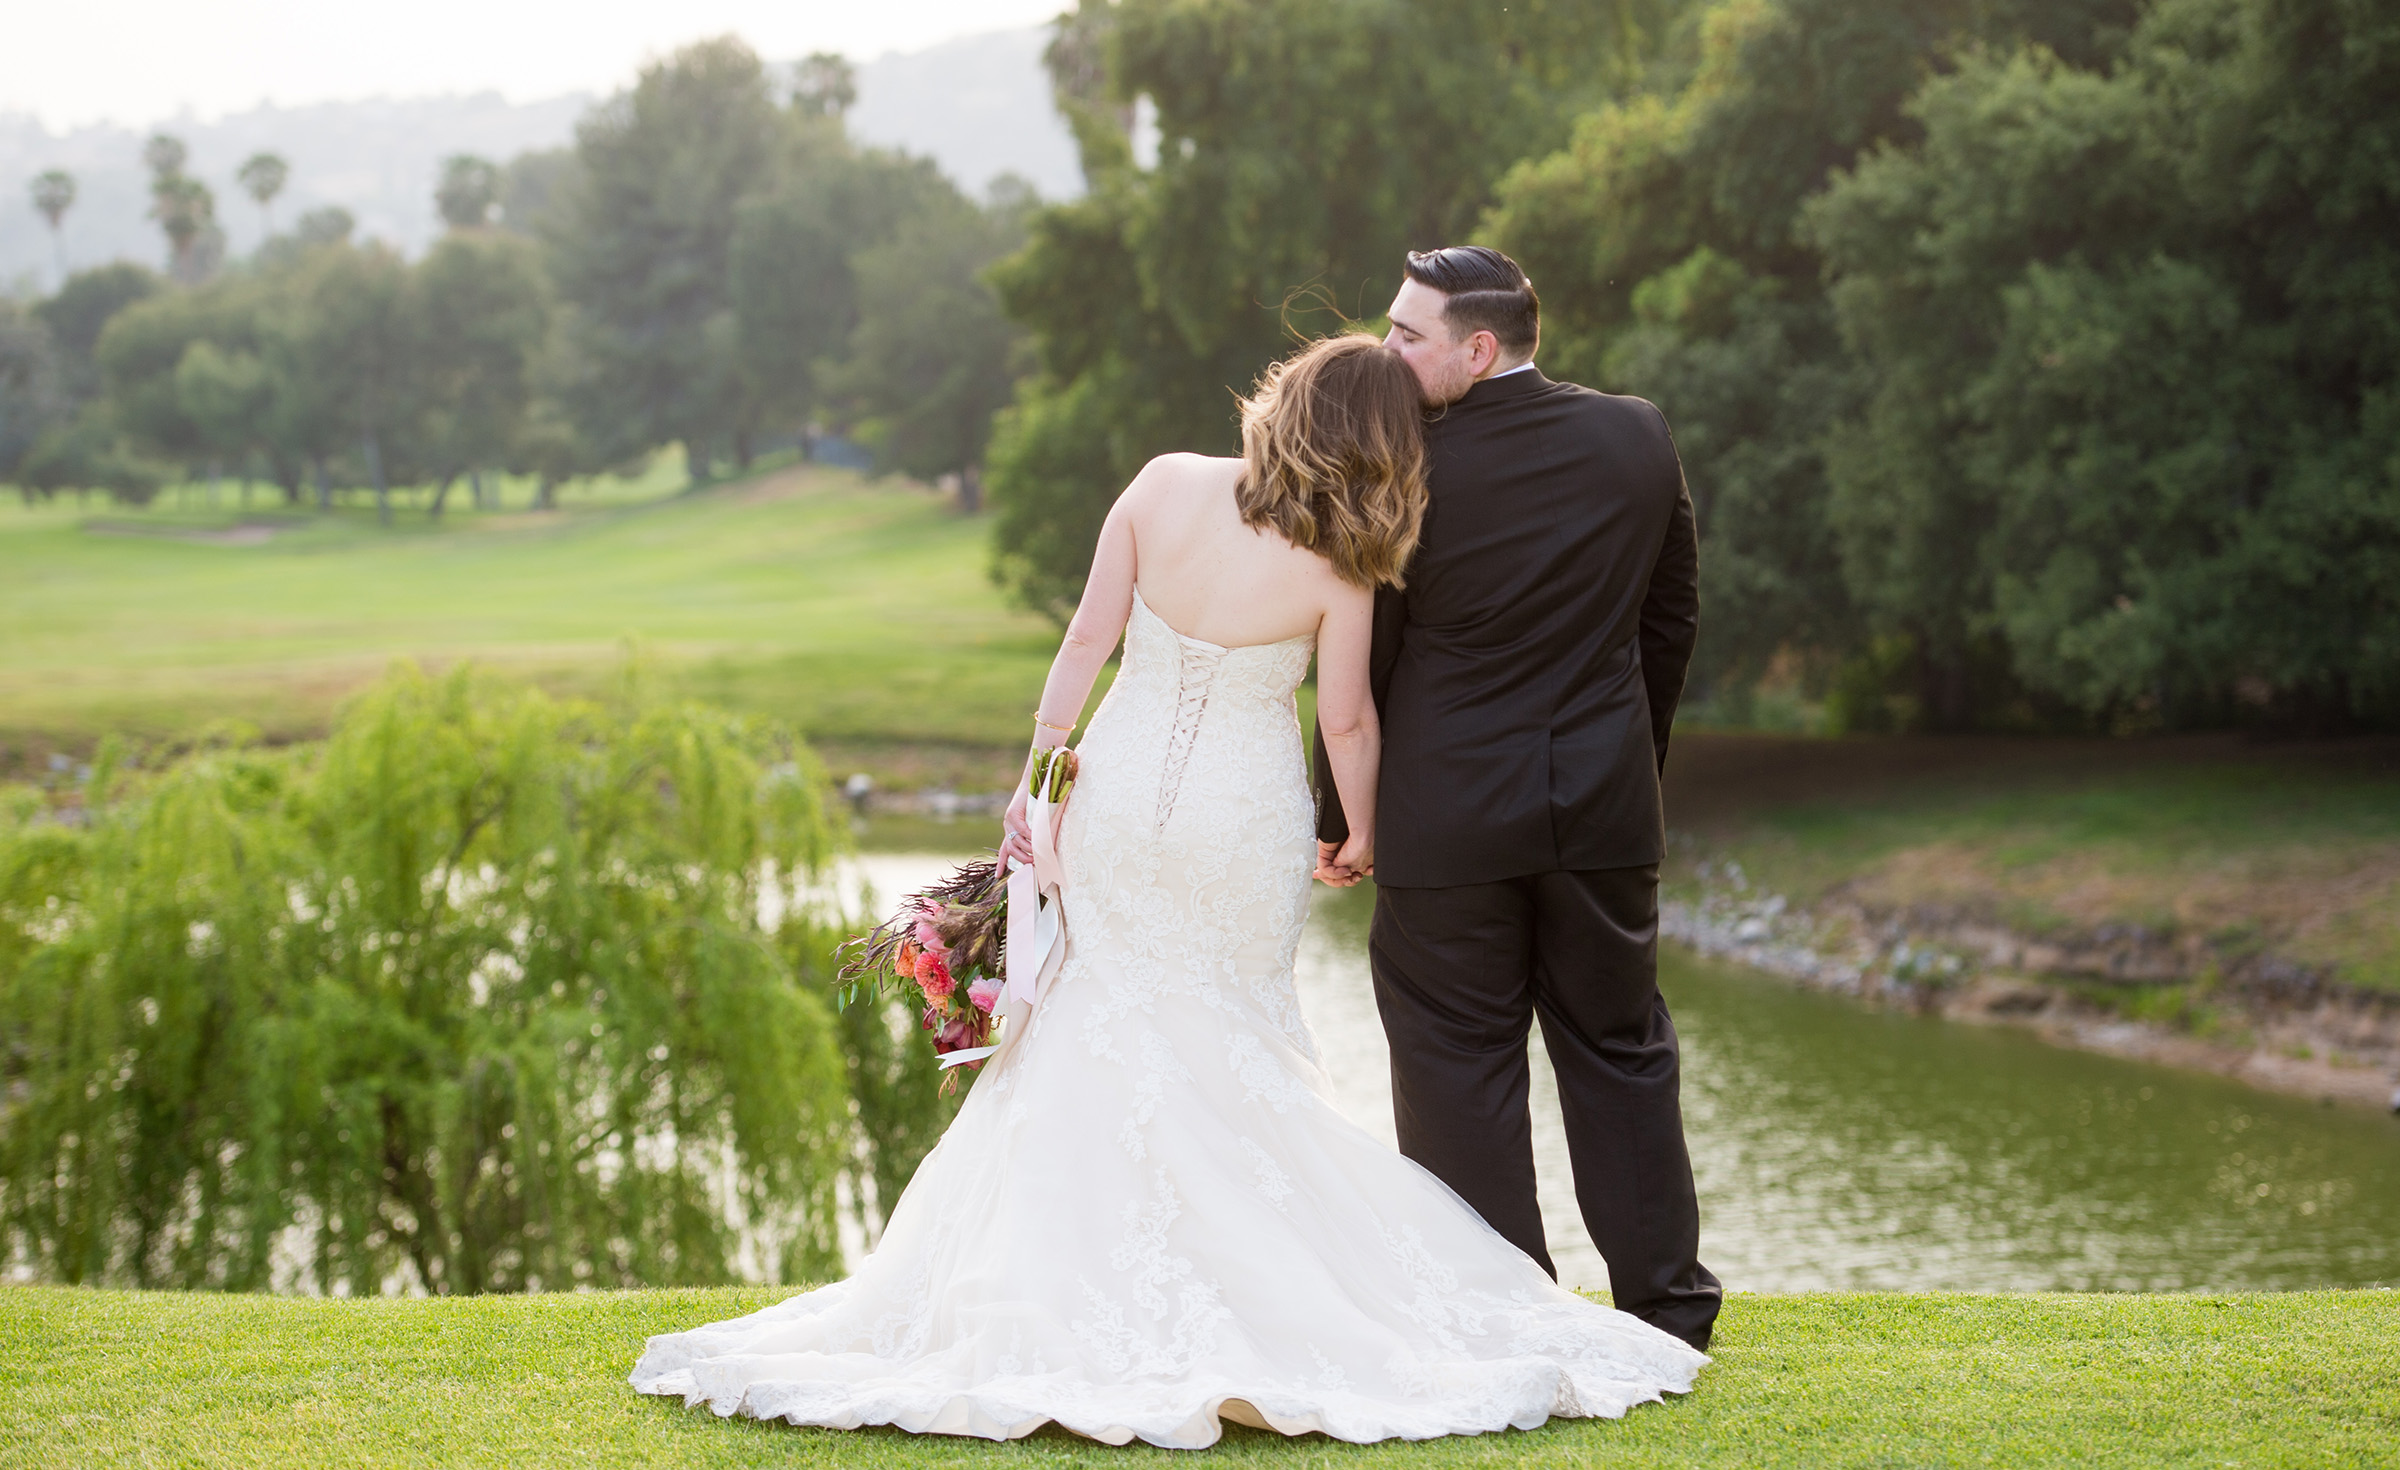 Pond overlook photo opportunity - Sierra La Verne - La Verne, California - Claremont Area - Los Angeles County - Wedgewood Weddings